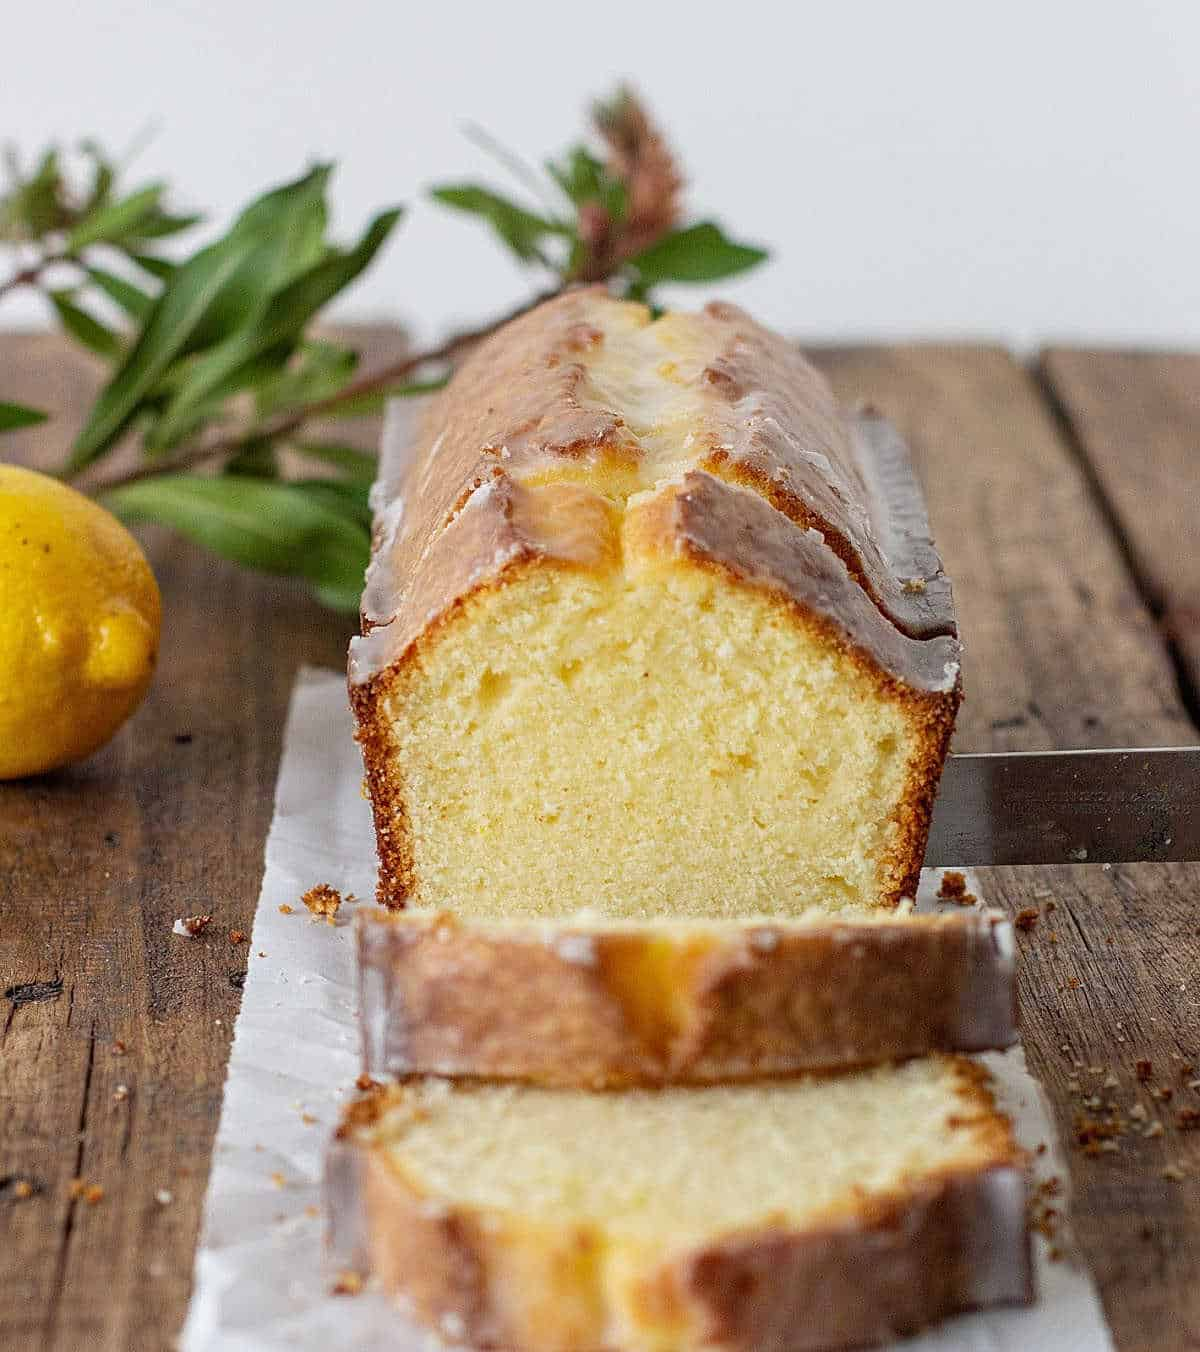 Half pound cake with slices on wooden board, a lemon, green branch and knife